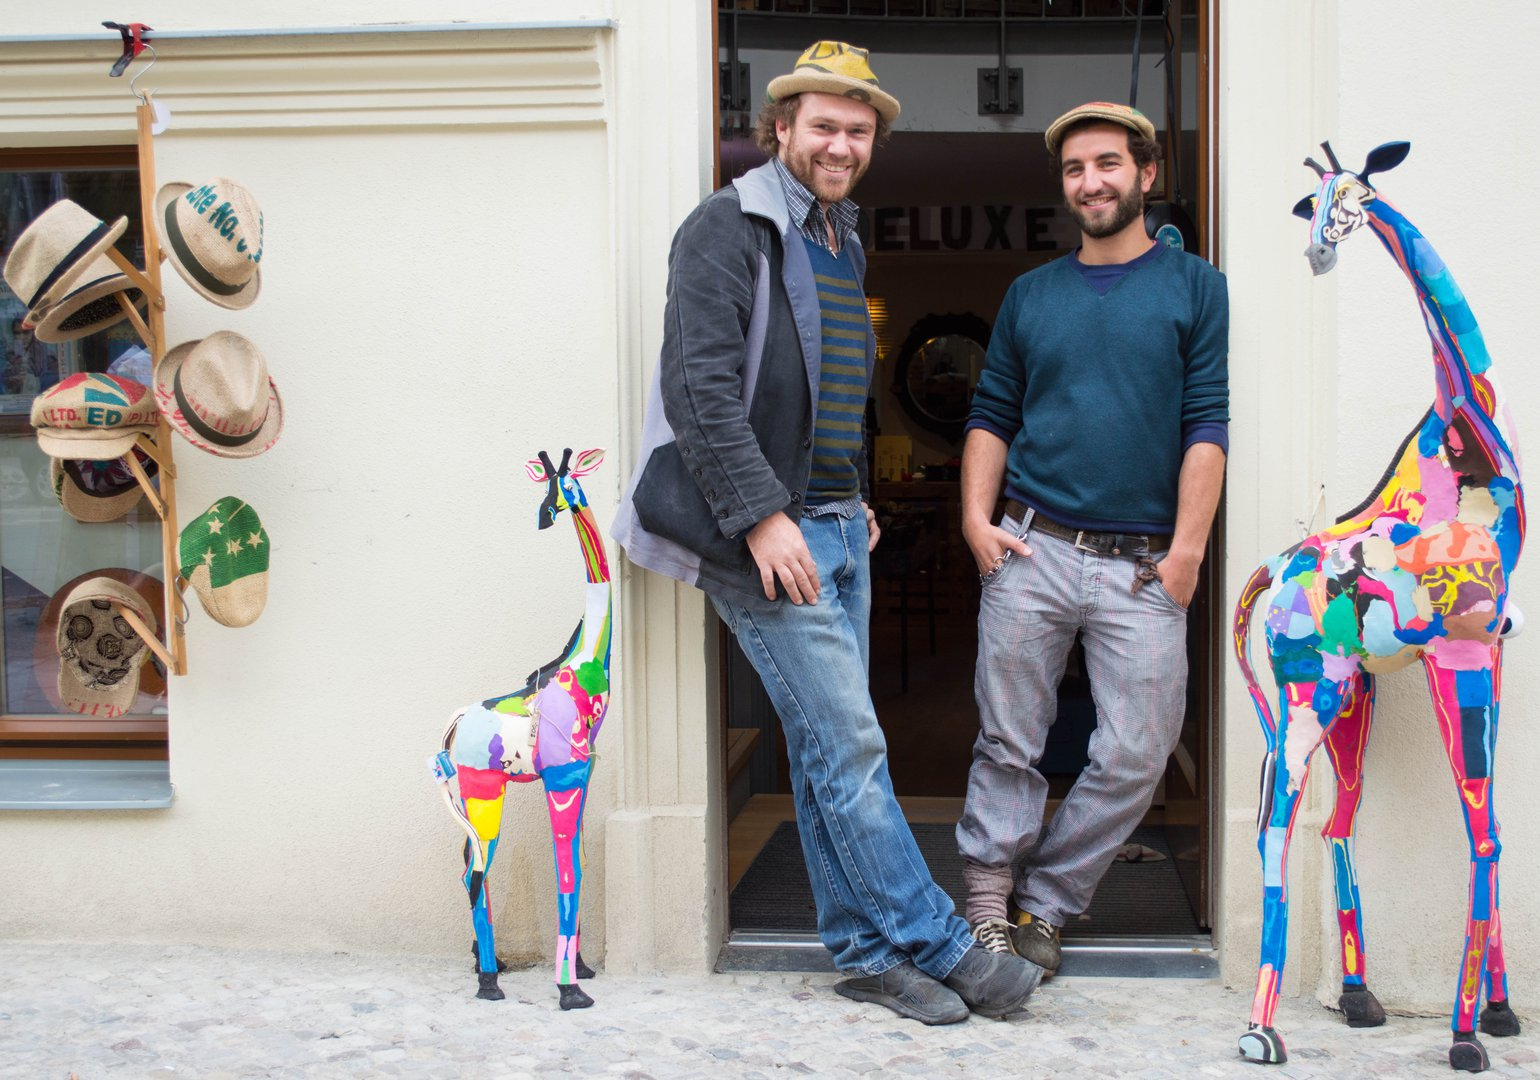 Upcycling Berlin the green berlin: upcycling, creative sustainable trend - living